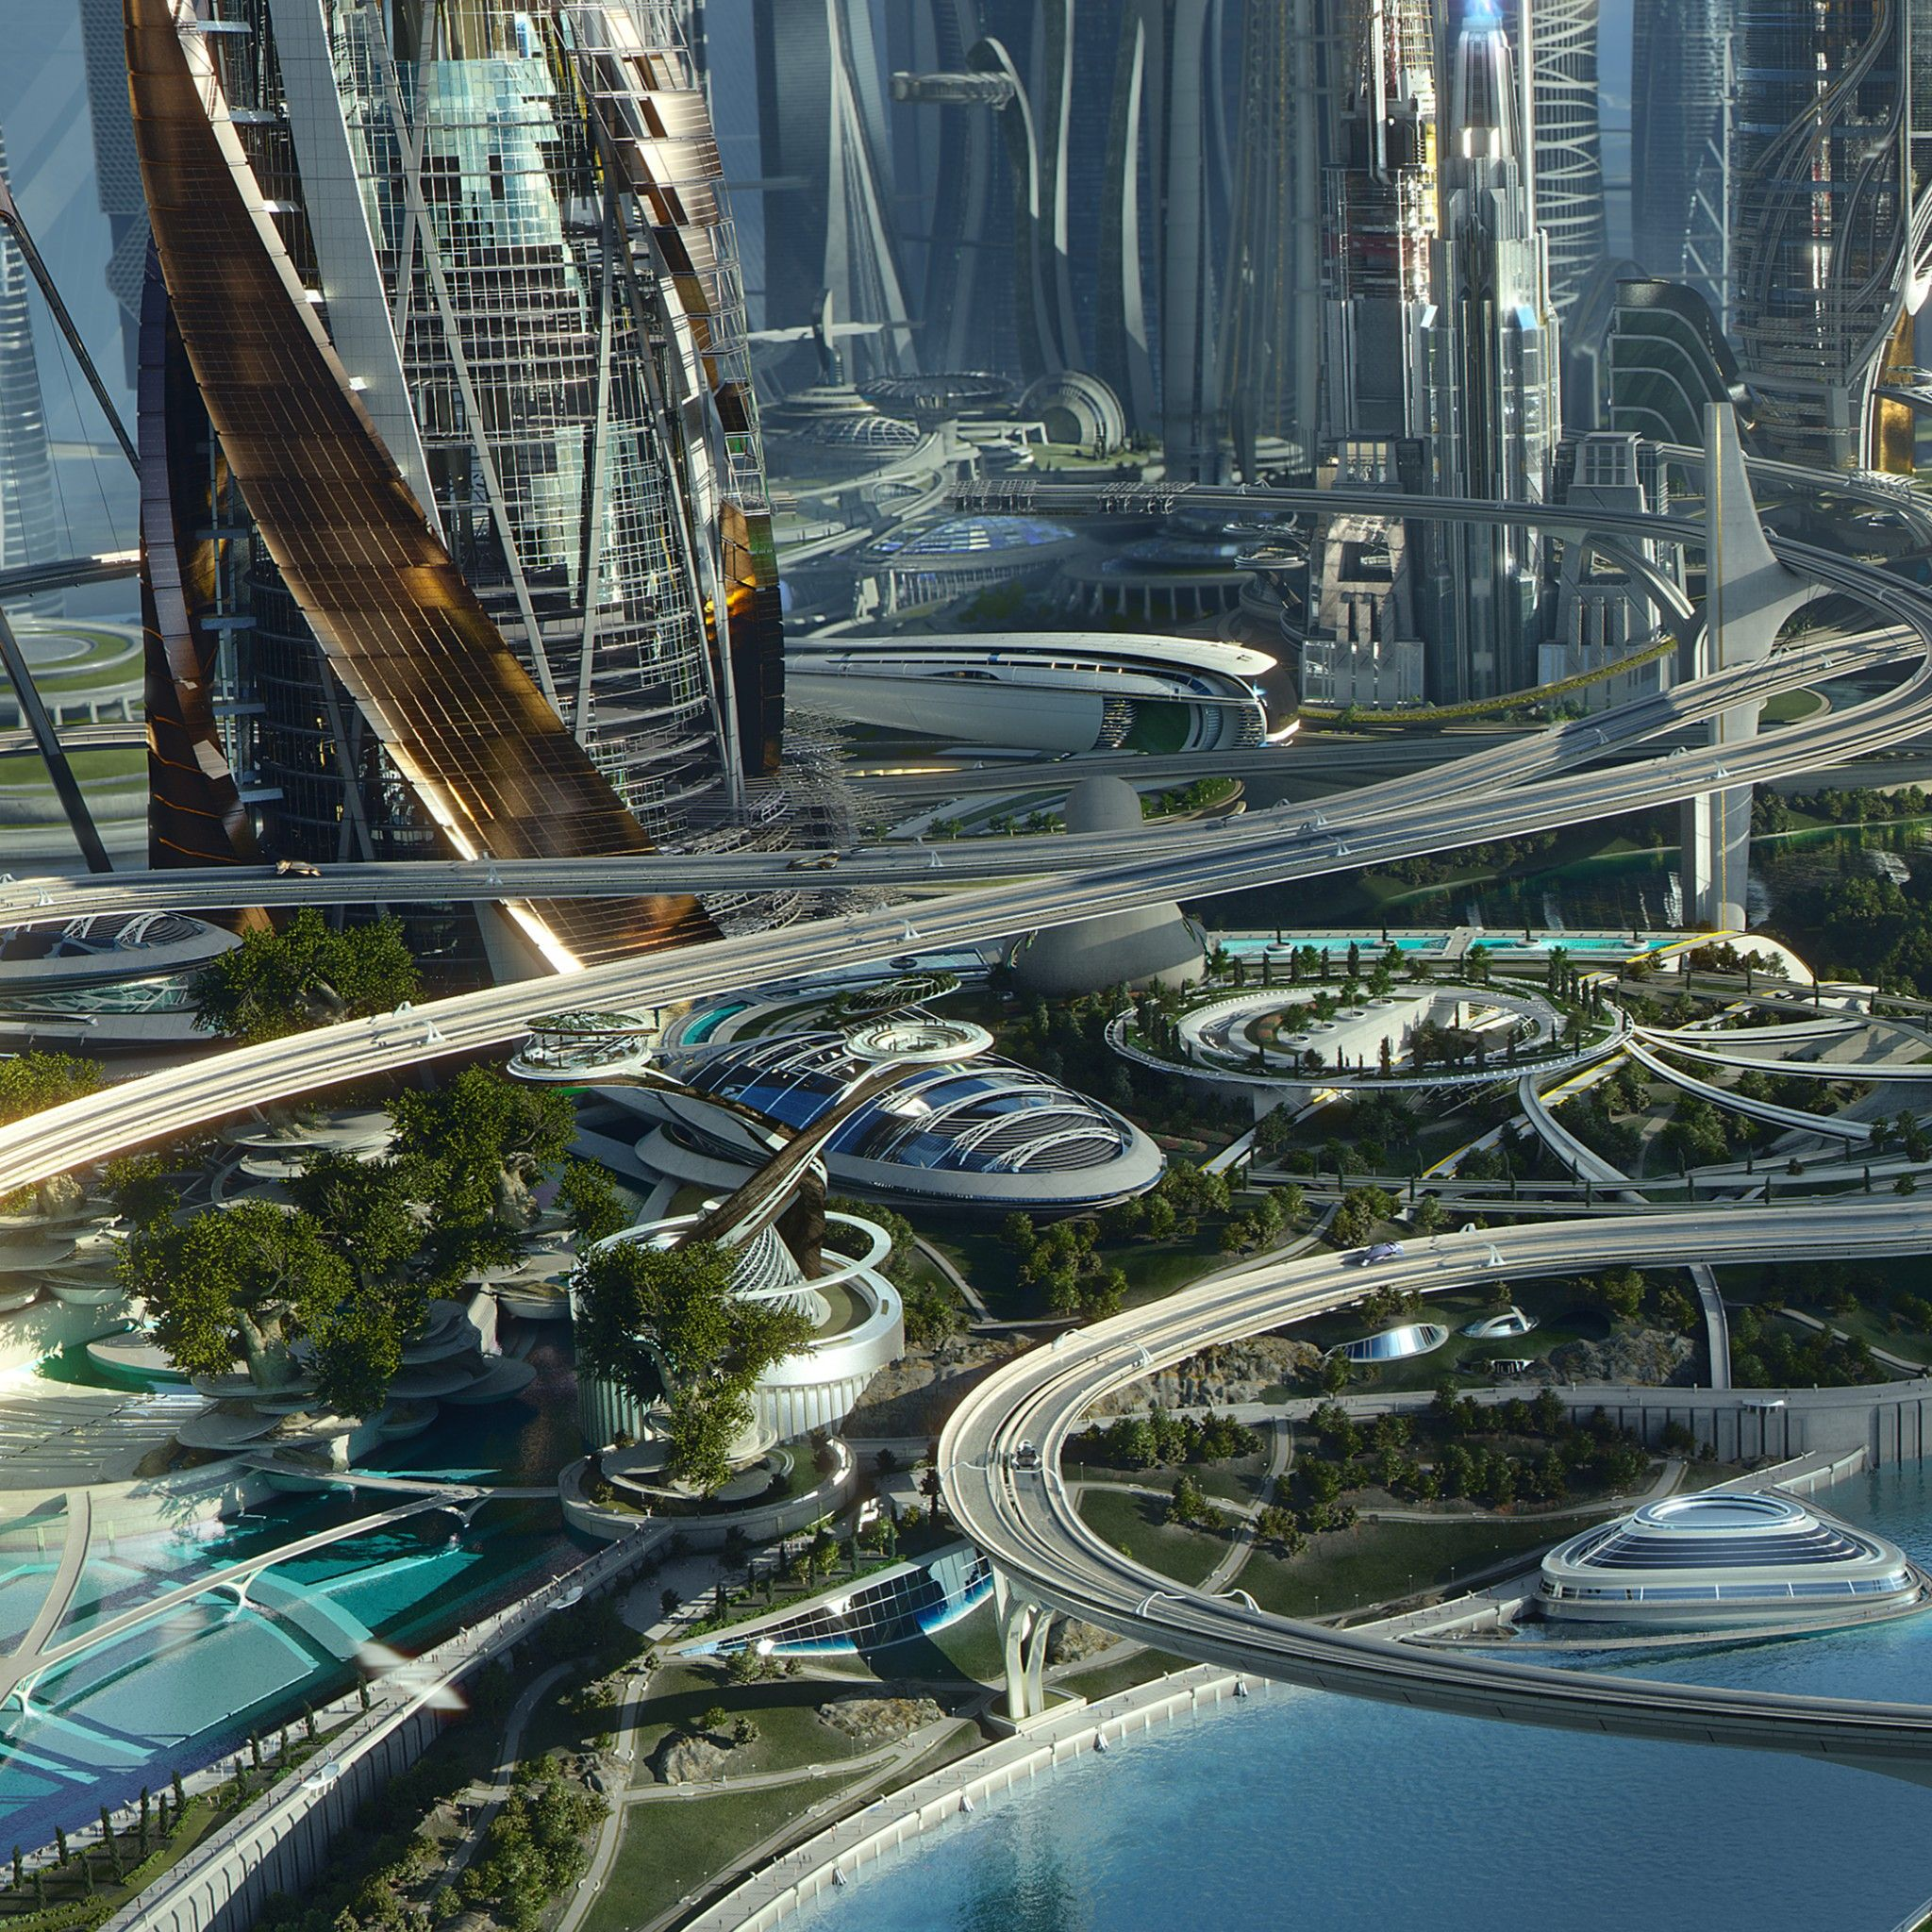 Future Utopia City - Tap to see more futuristic utopian ...